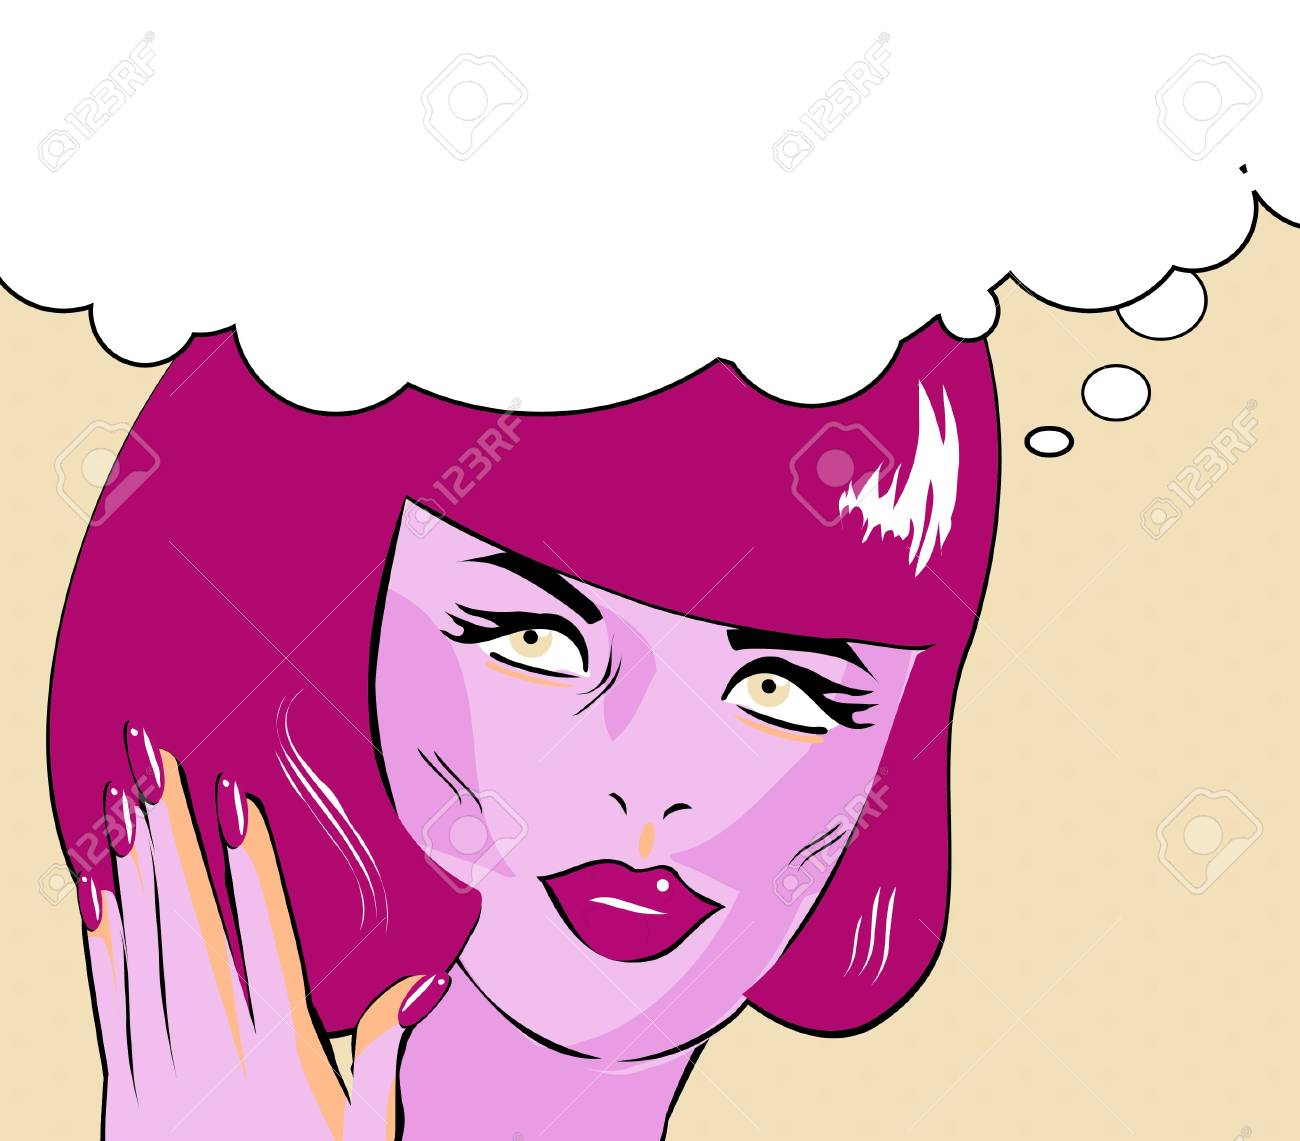 Pop Art Vector Illustration of a Woman Stock Vector - 15770915